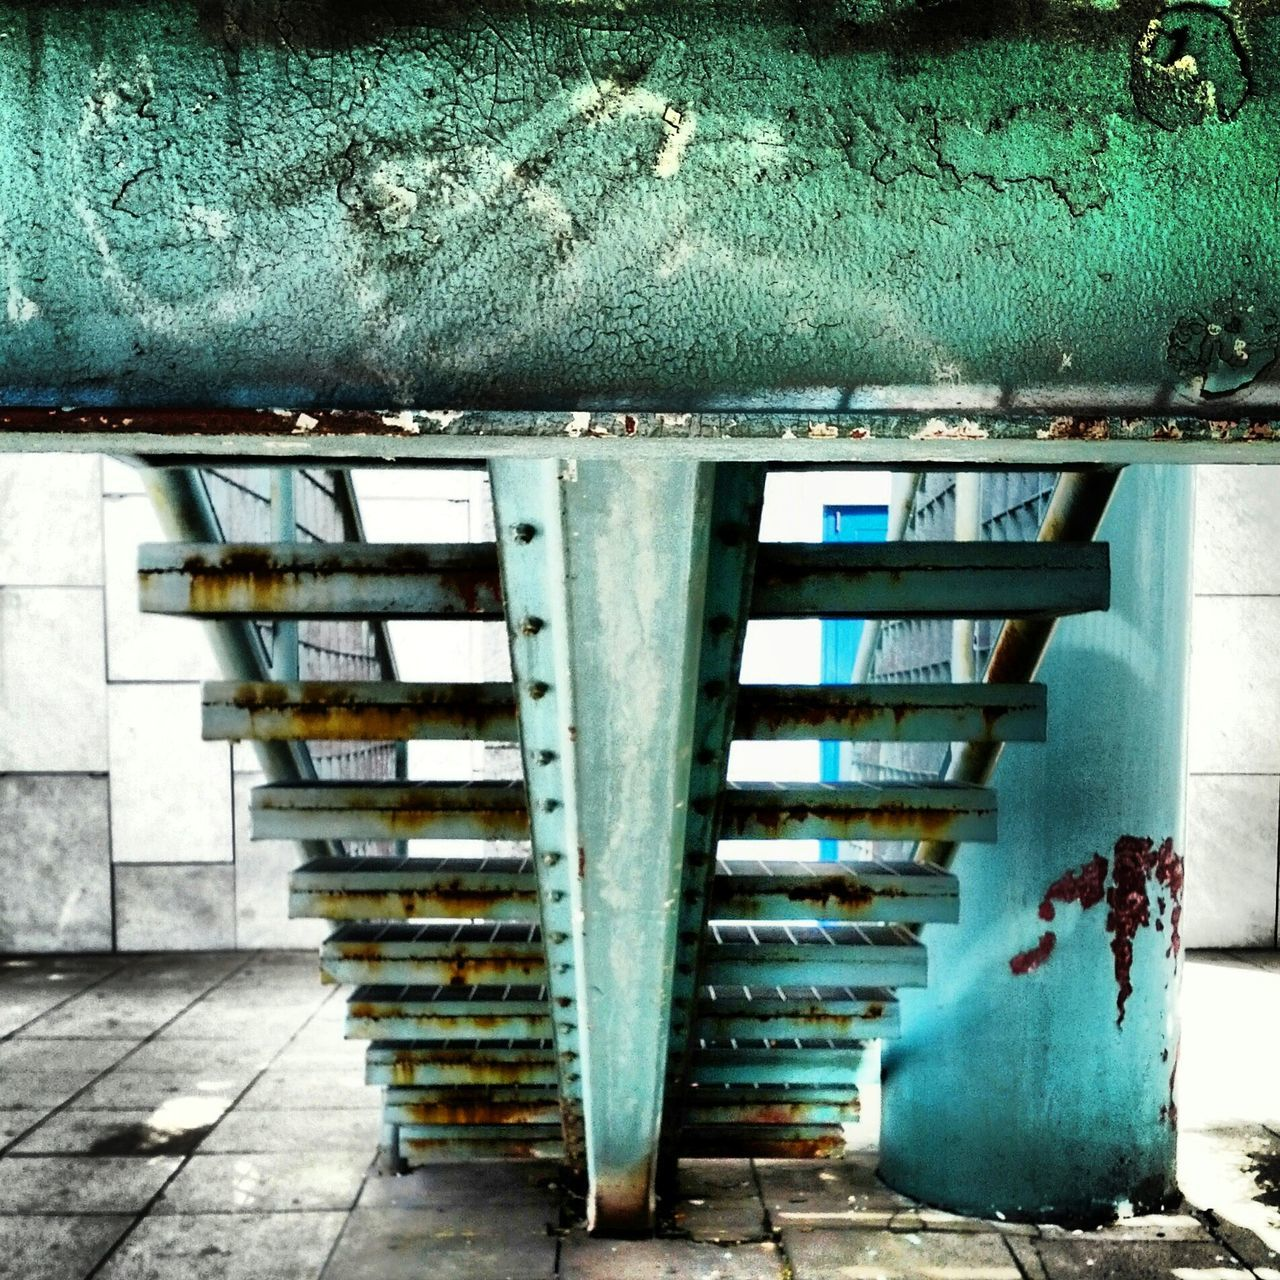 Streetphotography ArchiTexture Architecture_collection Streetphoto_color